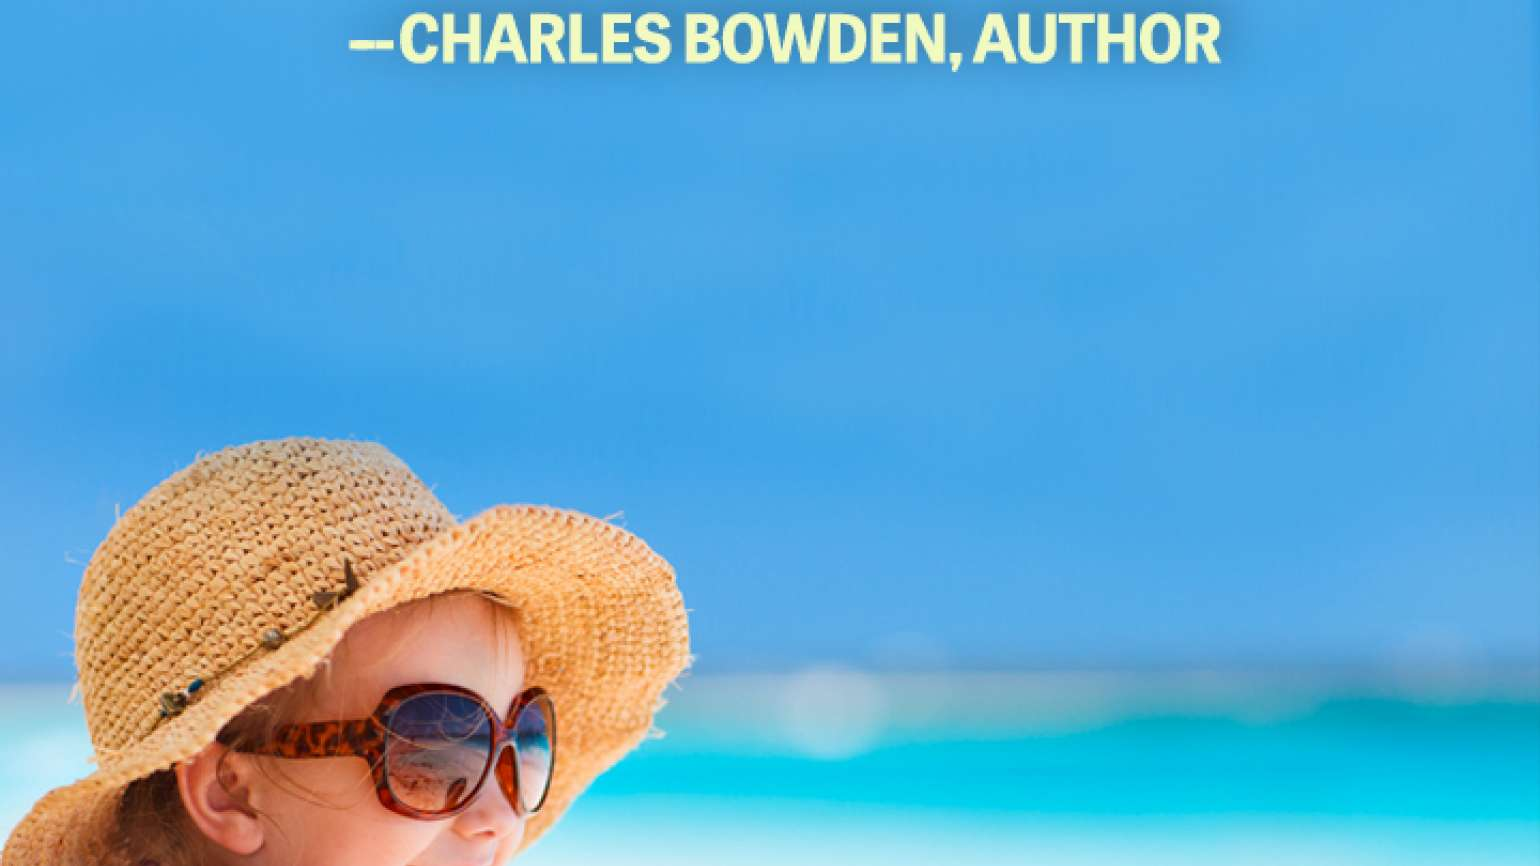 Happiness Graphic quote Charles Bowden summertime best